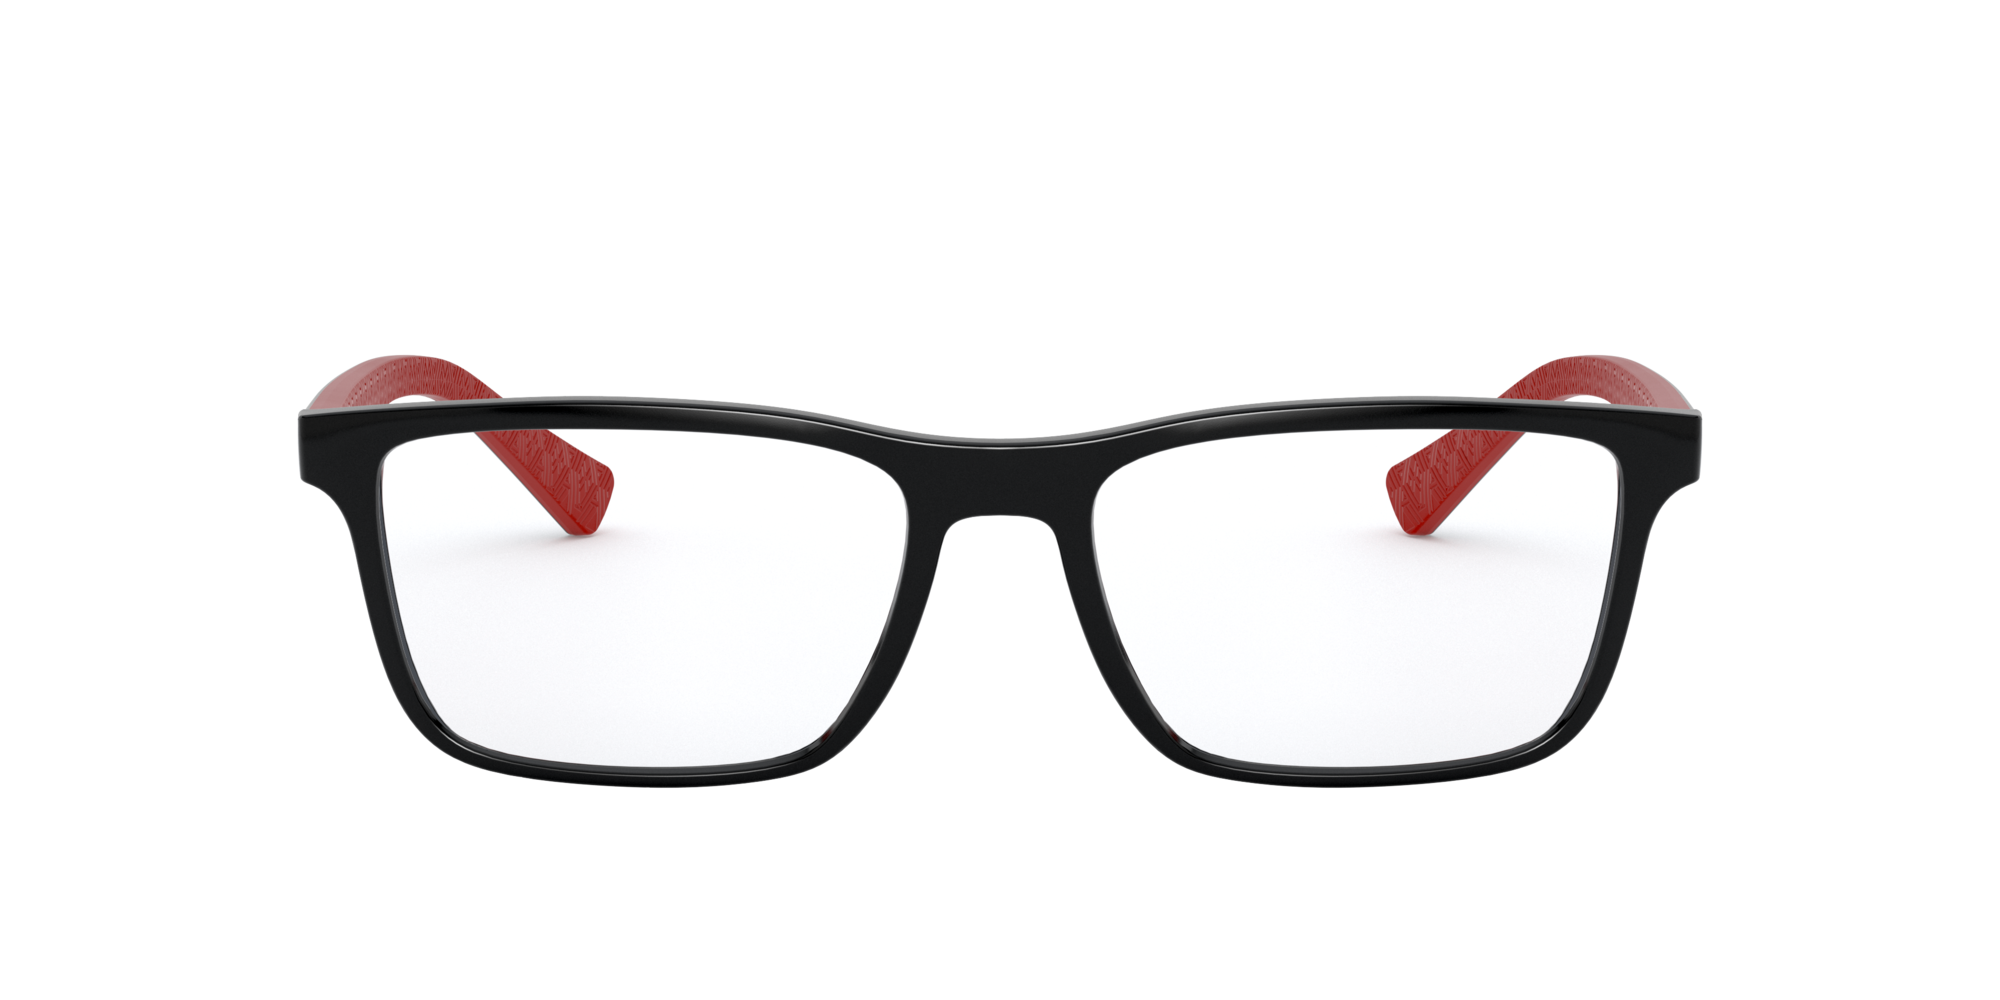 Image for AX3067 from LensCrafters | Glasses, Prescription Glasses Online, Eyewear